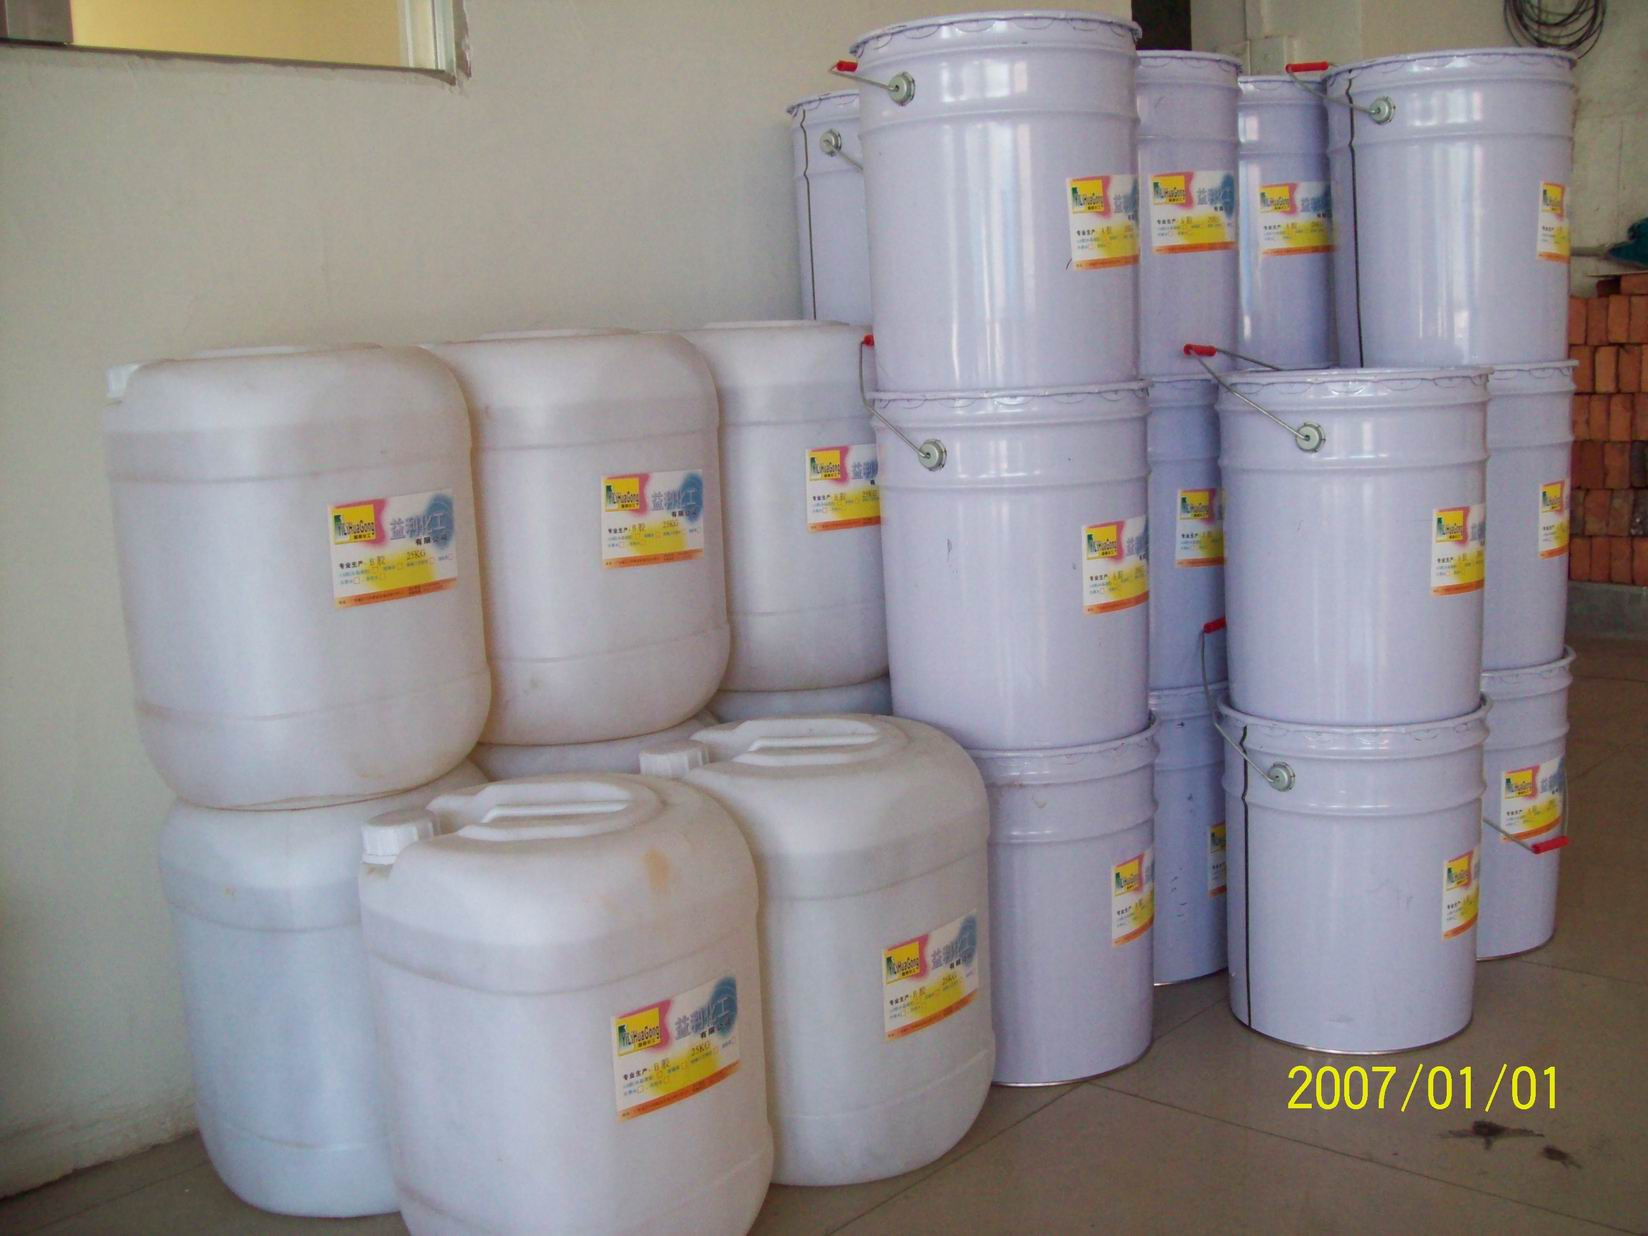 BGJ-0X special anti-corrosion coating for construction machinery